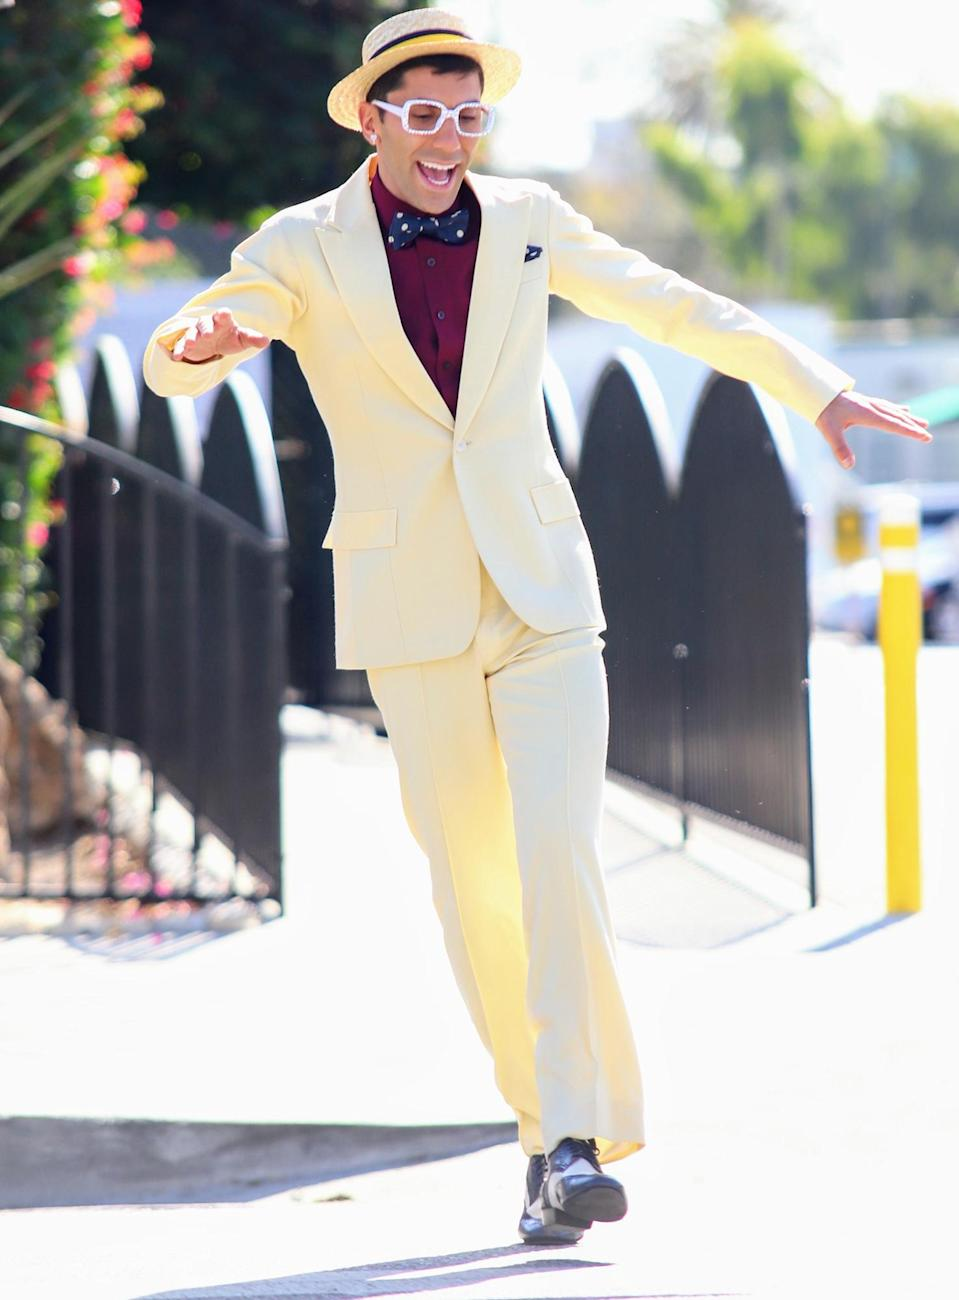 <p>Nev Shulman dances in the street on Monday in L.A. as the end of his <i>Dancing with the Stars</i> season approaches. </p>